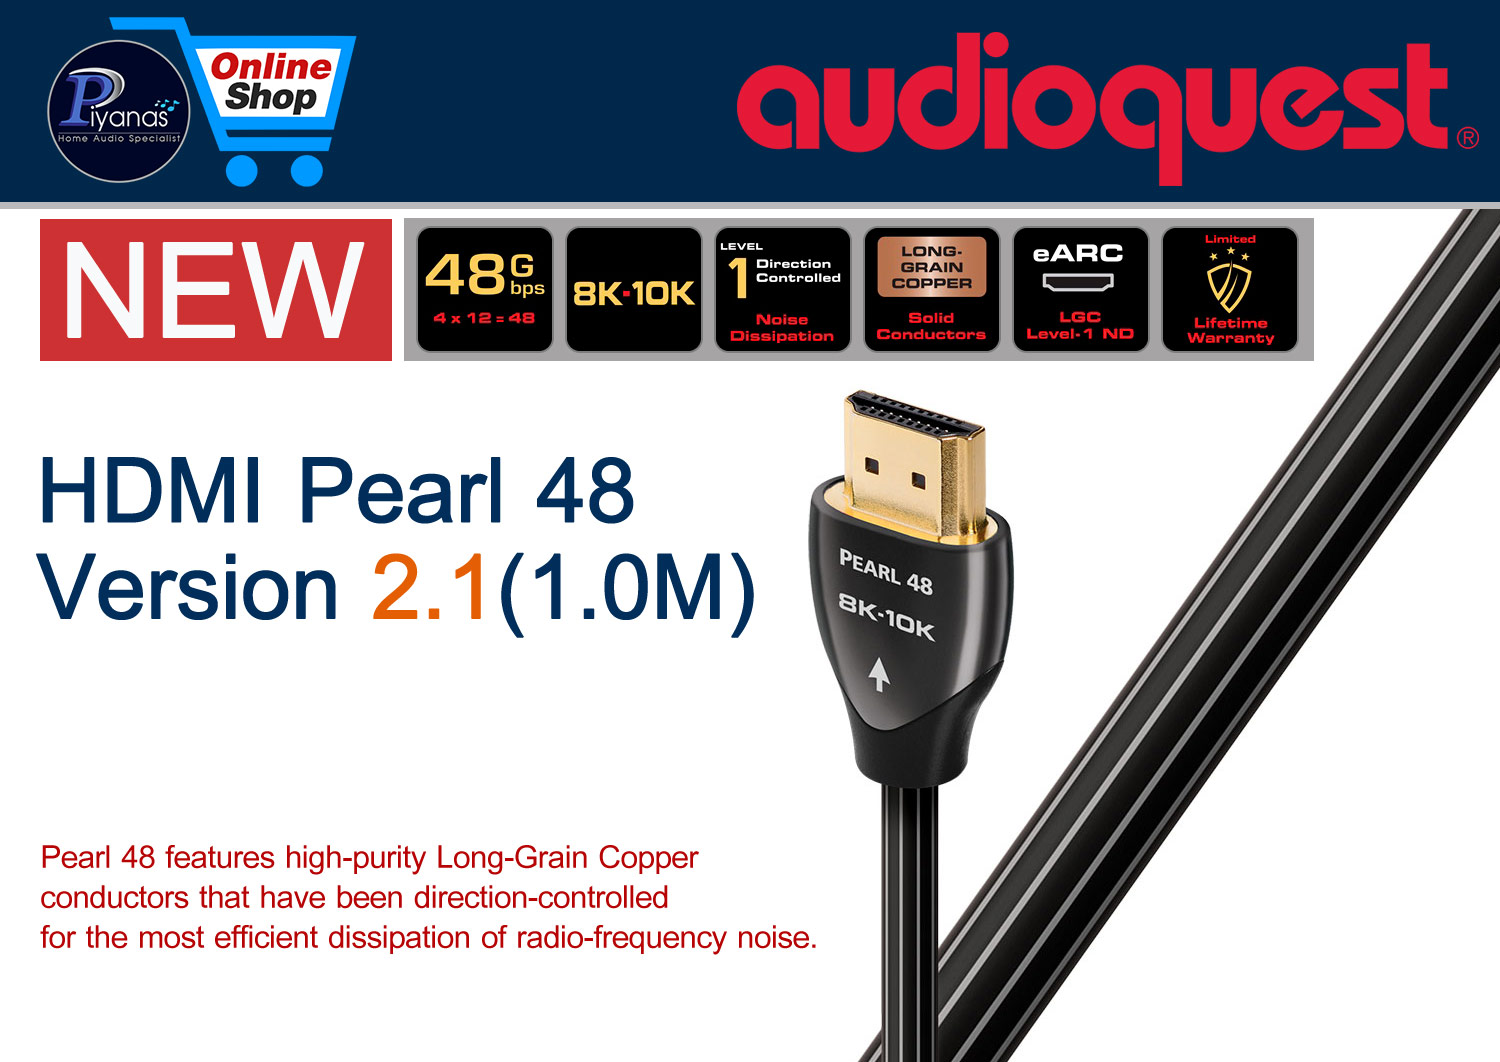 HDMI-Pearl 48 Version 2.1 (1.0M)